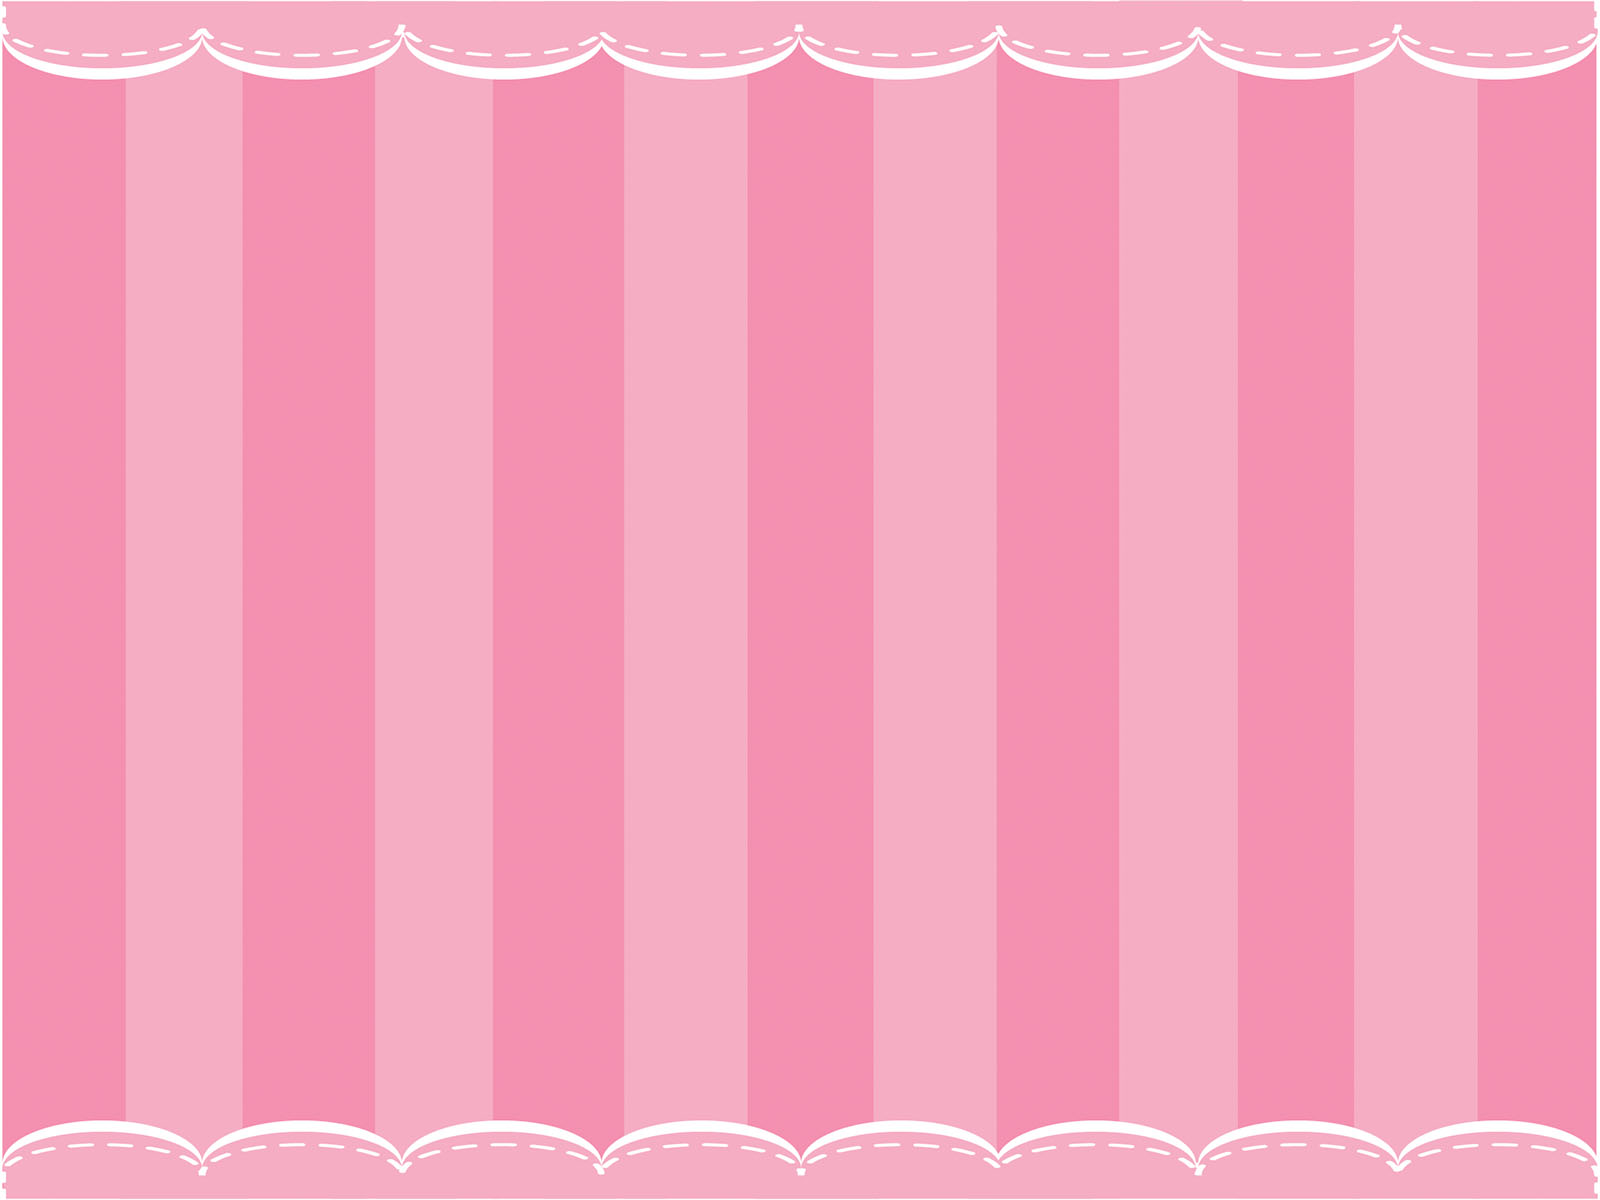 Cute Pink Curtain Powerpoint Templates